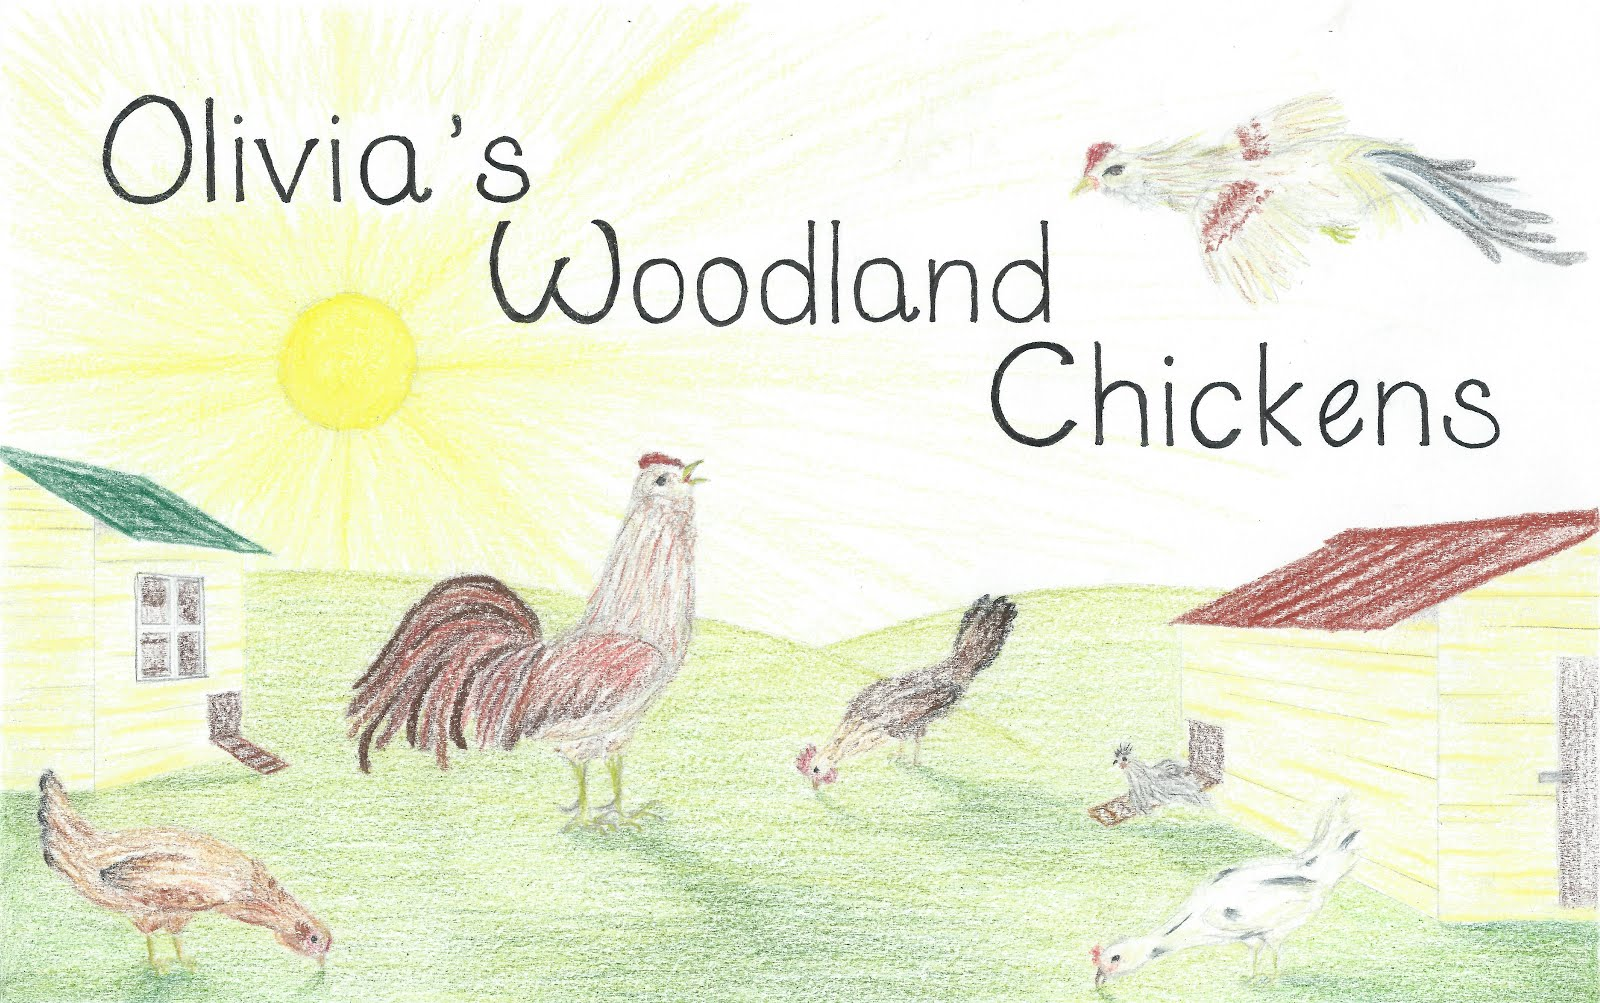 Olivia of the Chickens